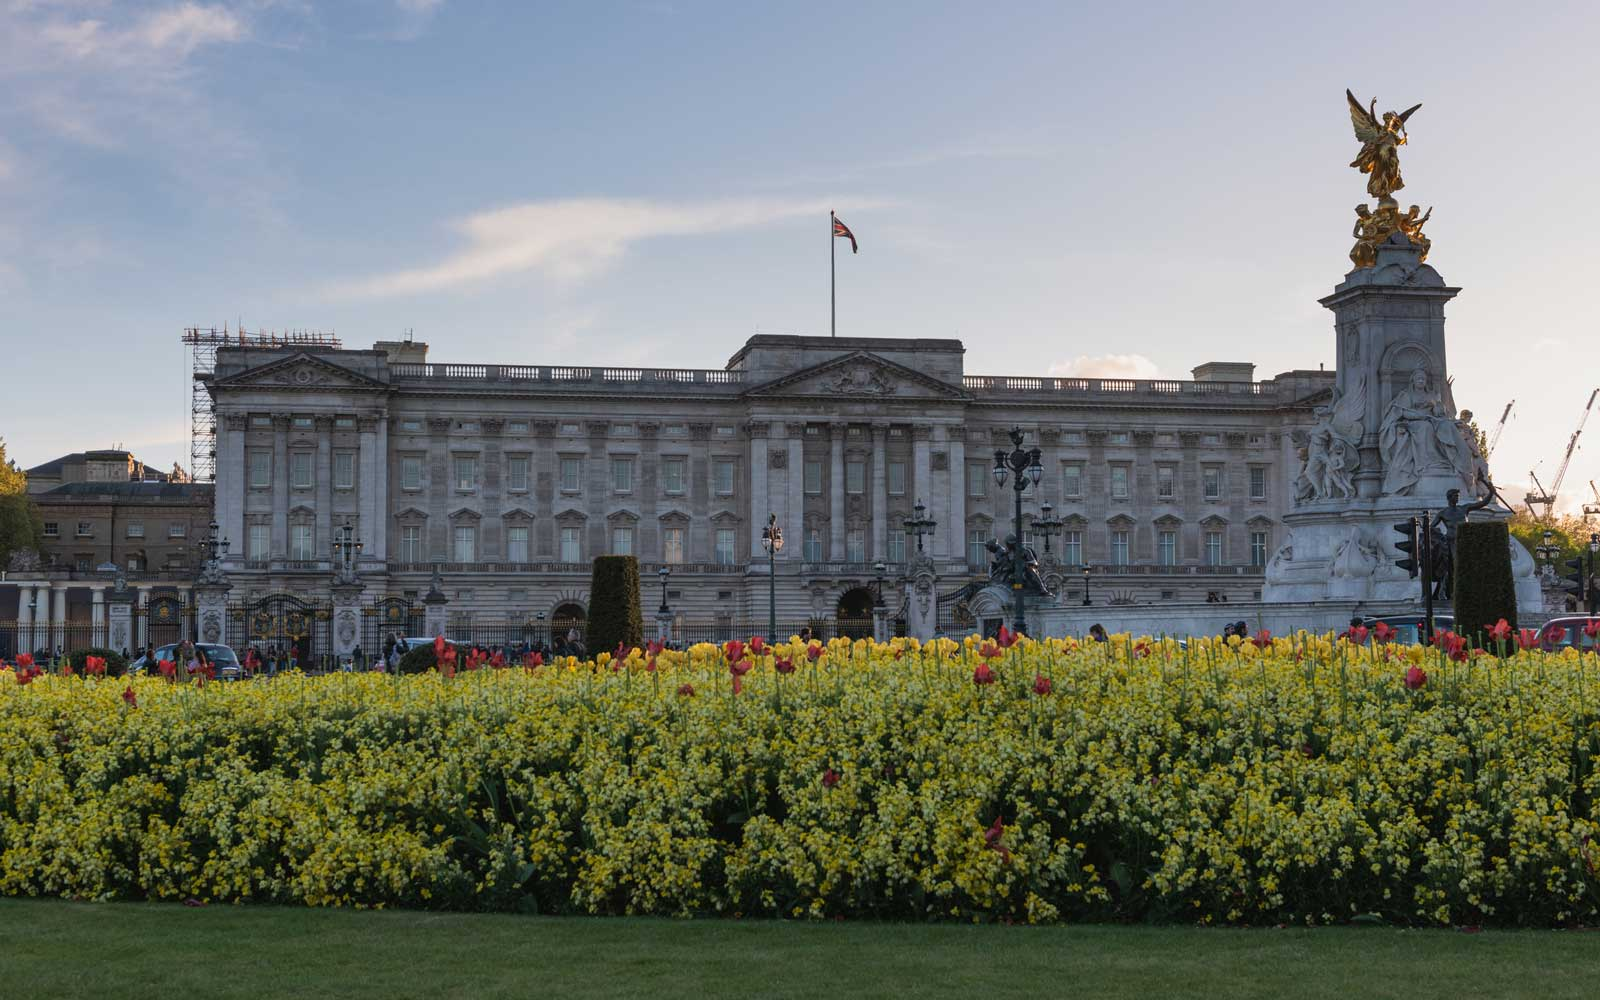 Here's a First Look at the Renovations Taking Place in Buckingham Palace